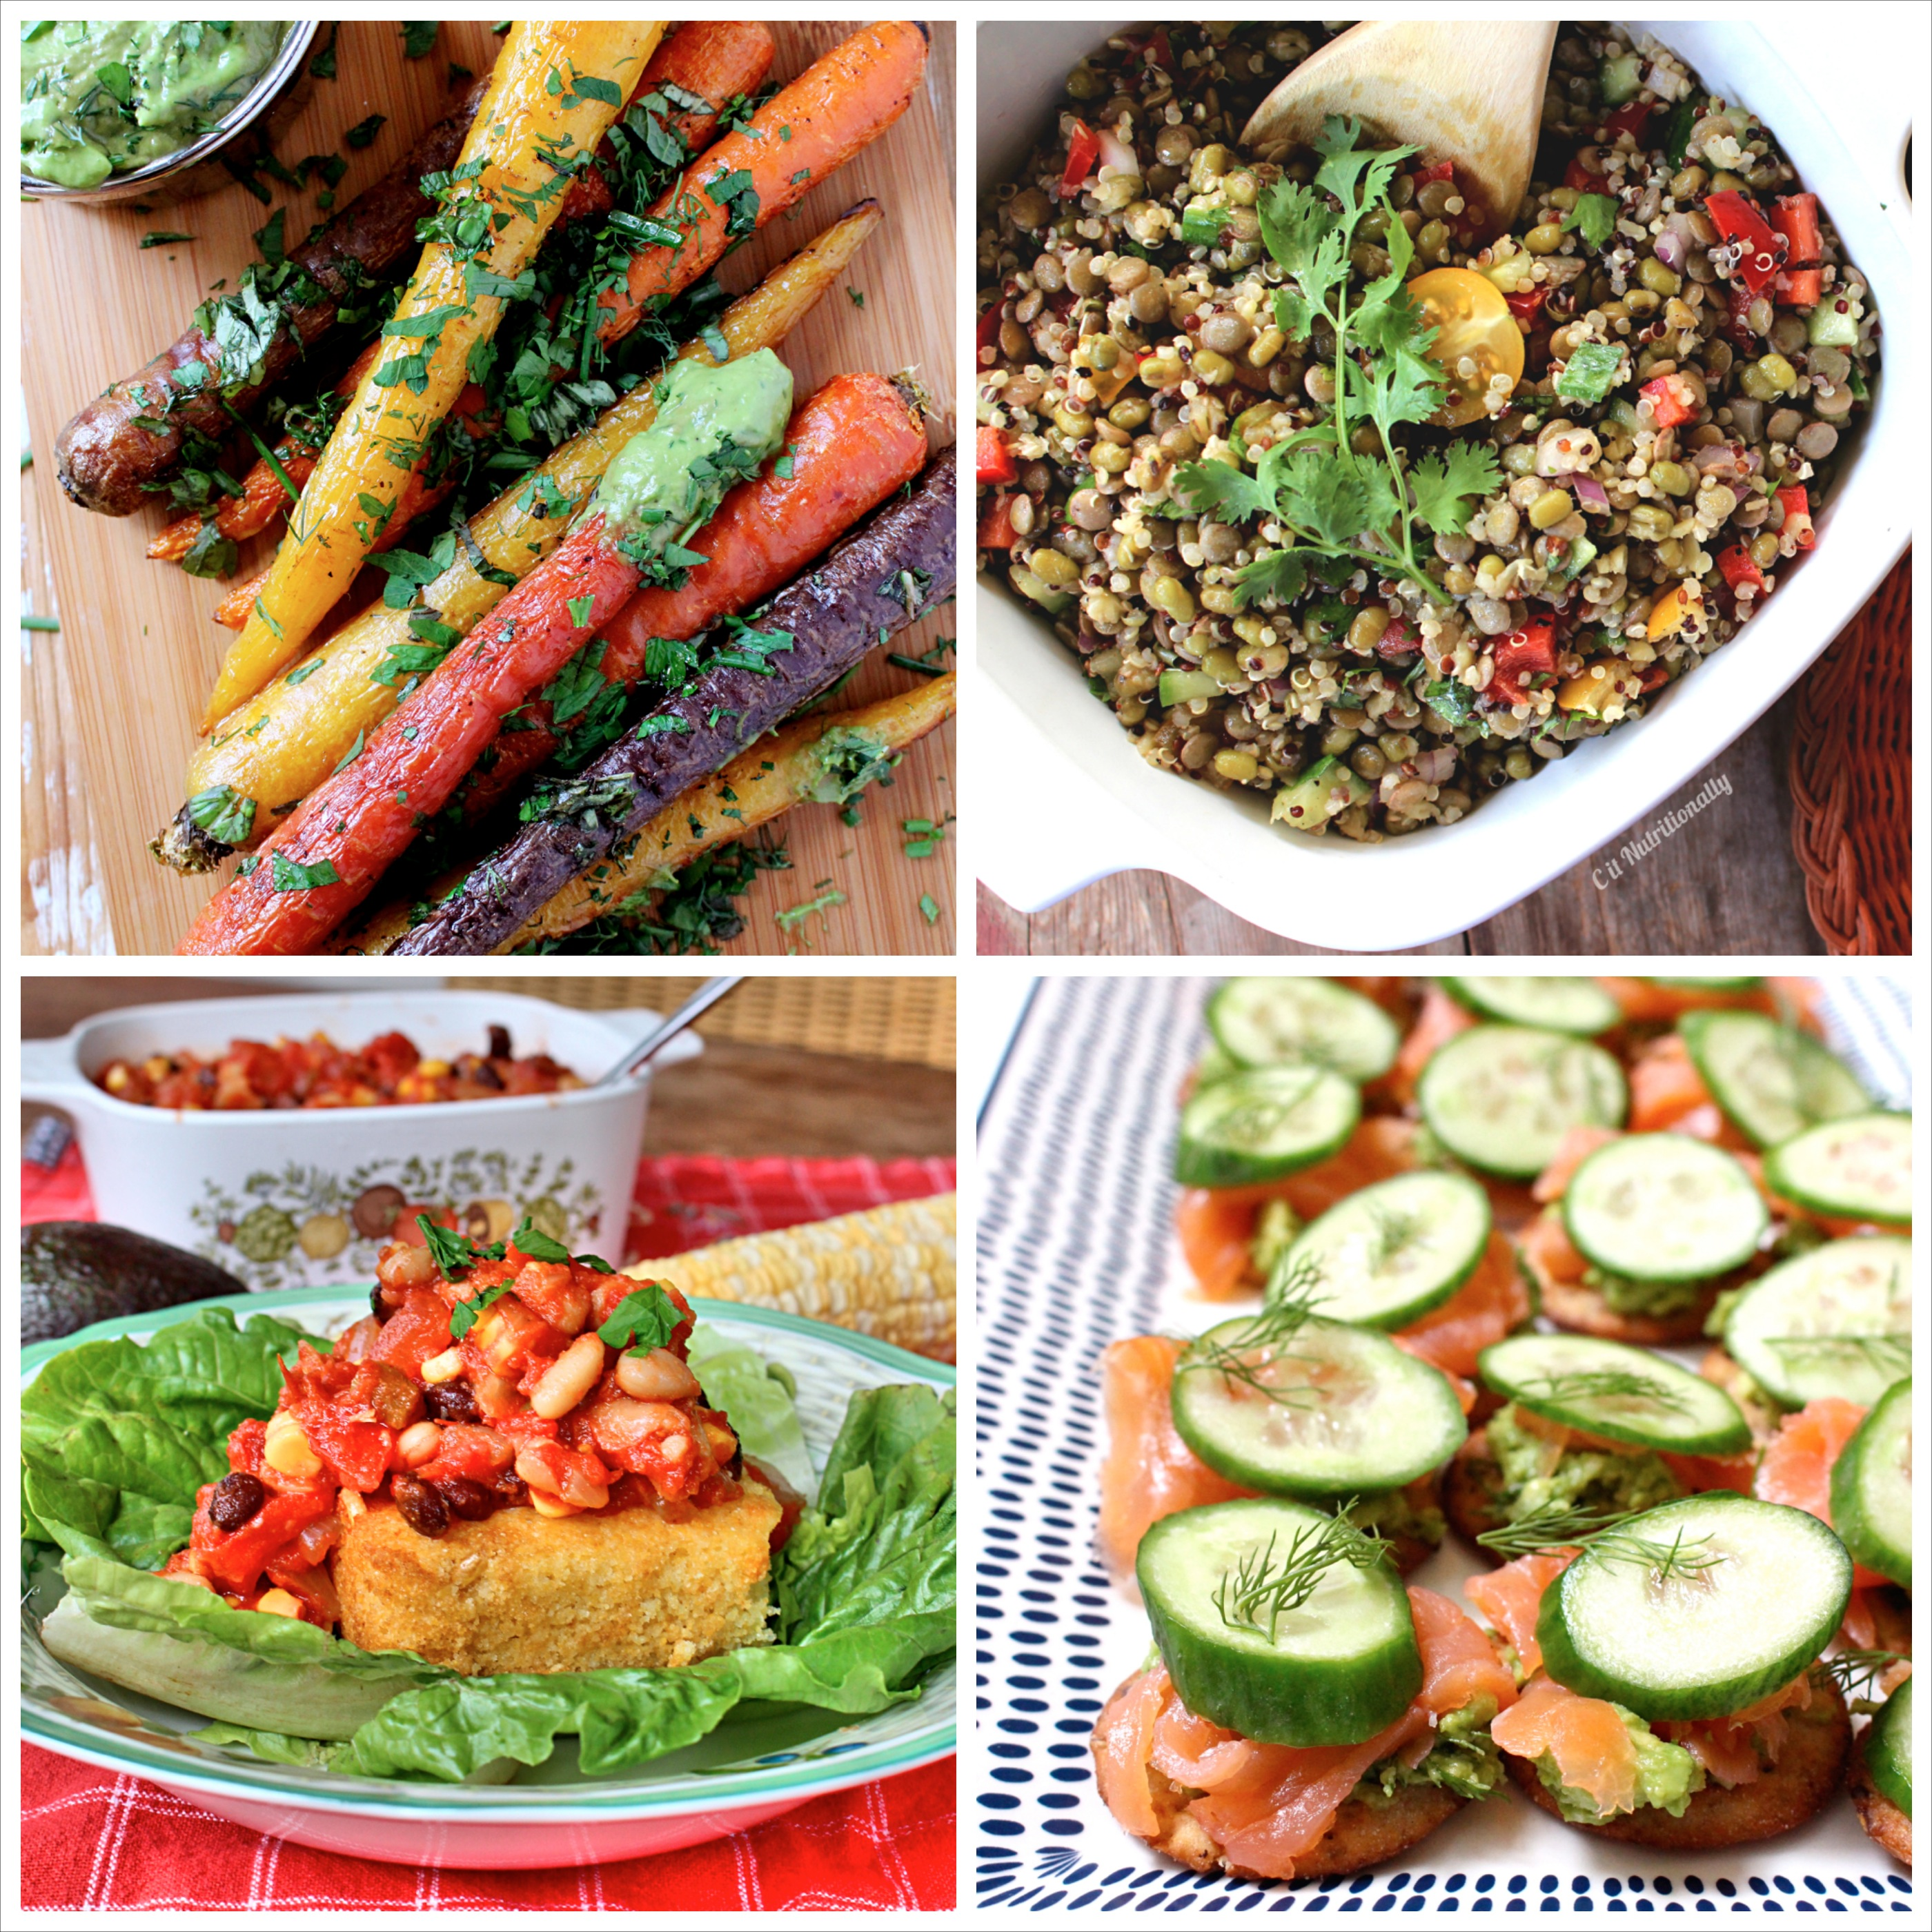 5 Ways To Make Healthy Foods Taste Good C It Nutritionally in Brilliant healthy foods to make intended for your inspiration